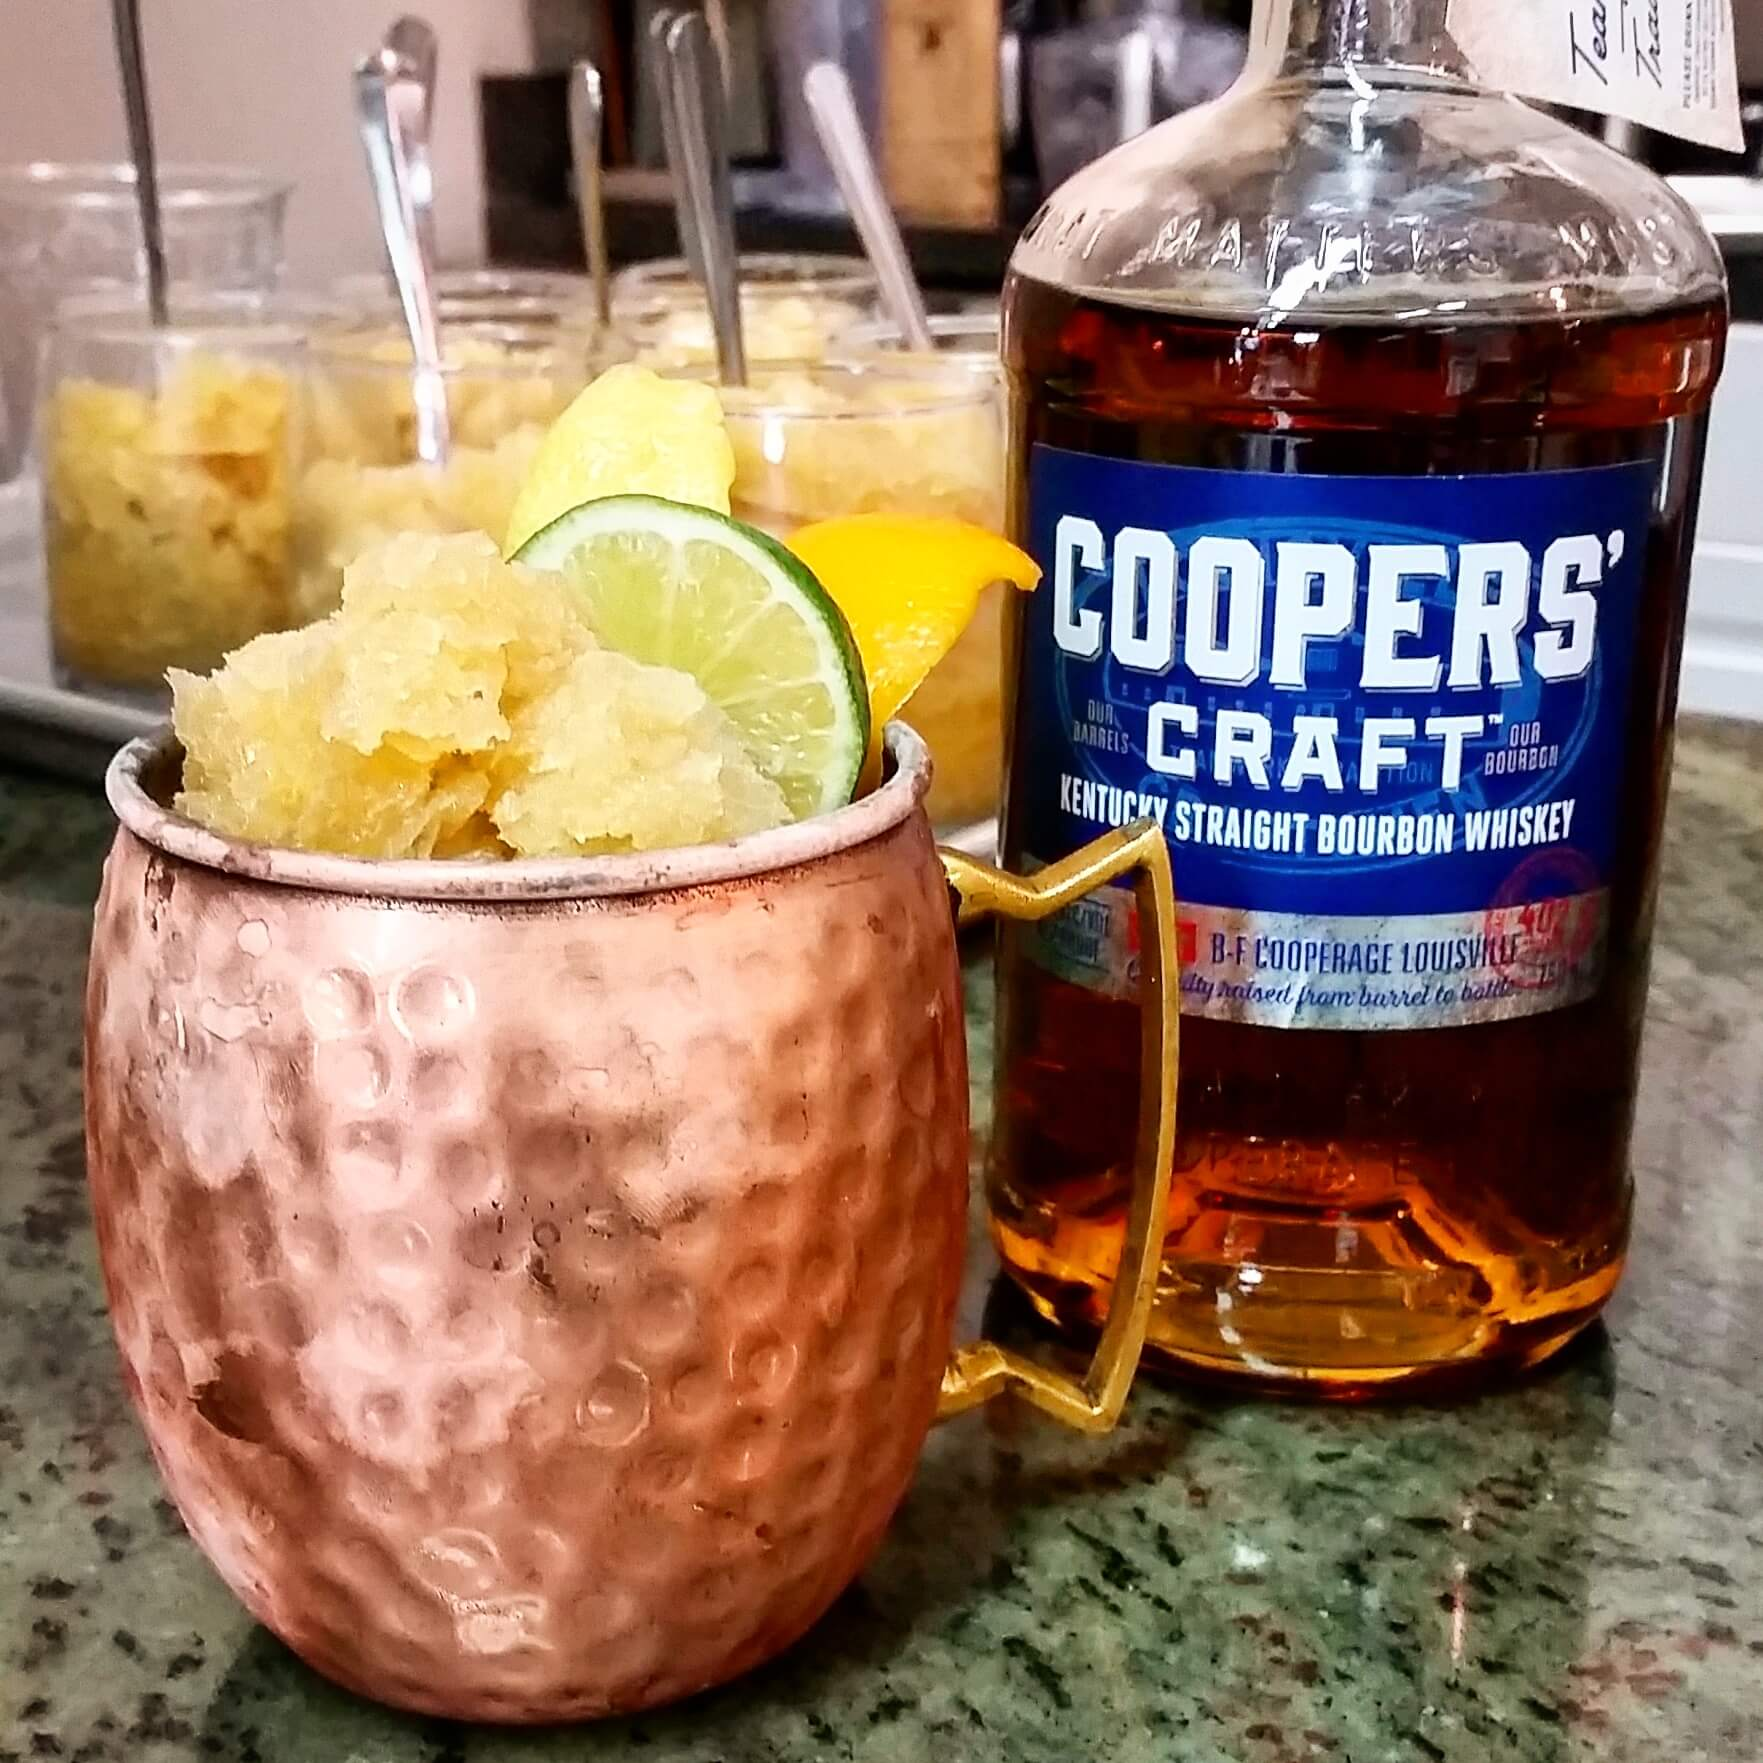 Bourbon Slushie cocktail made with Cooper's Craft - Cooper's Craft Kentucky Straight Bourbon